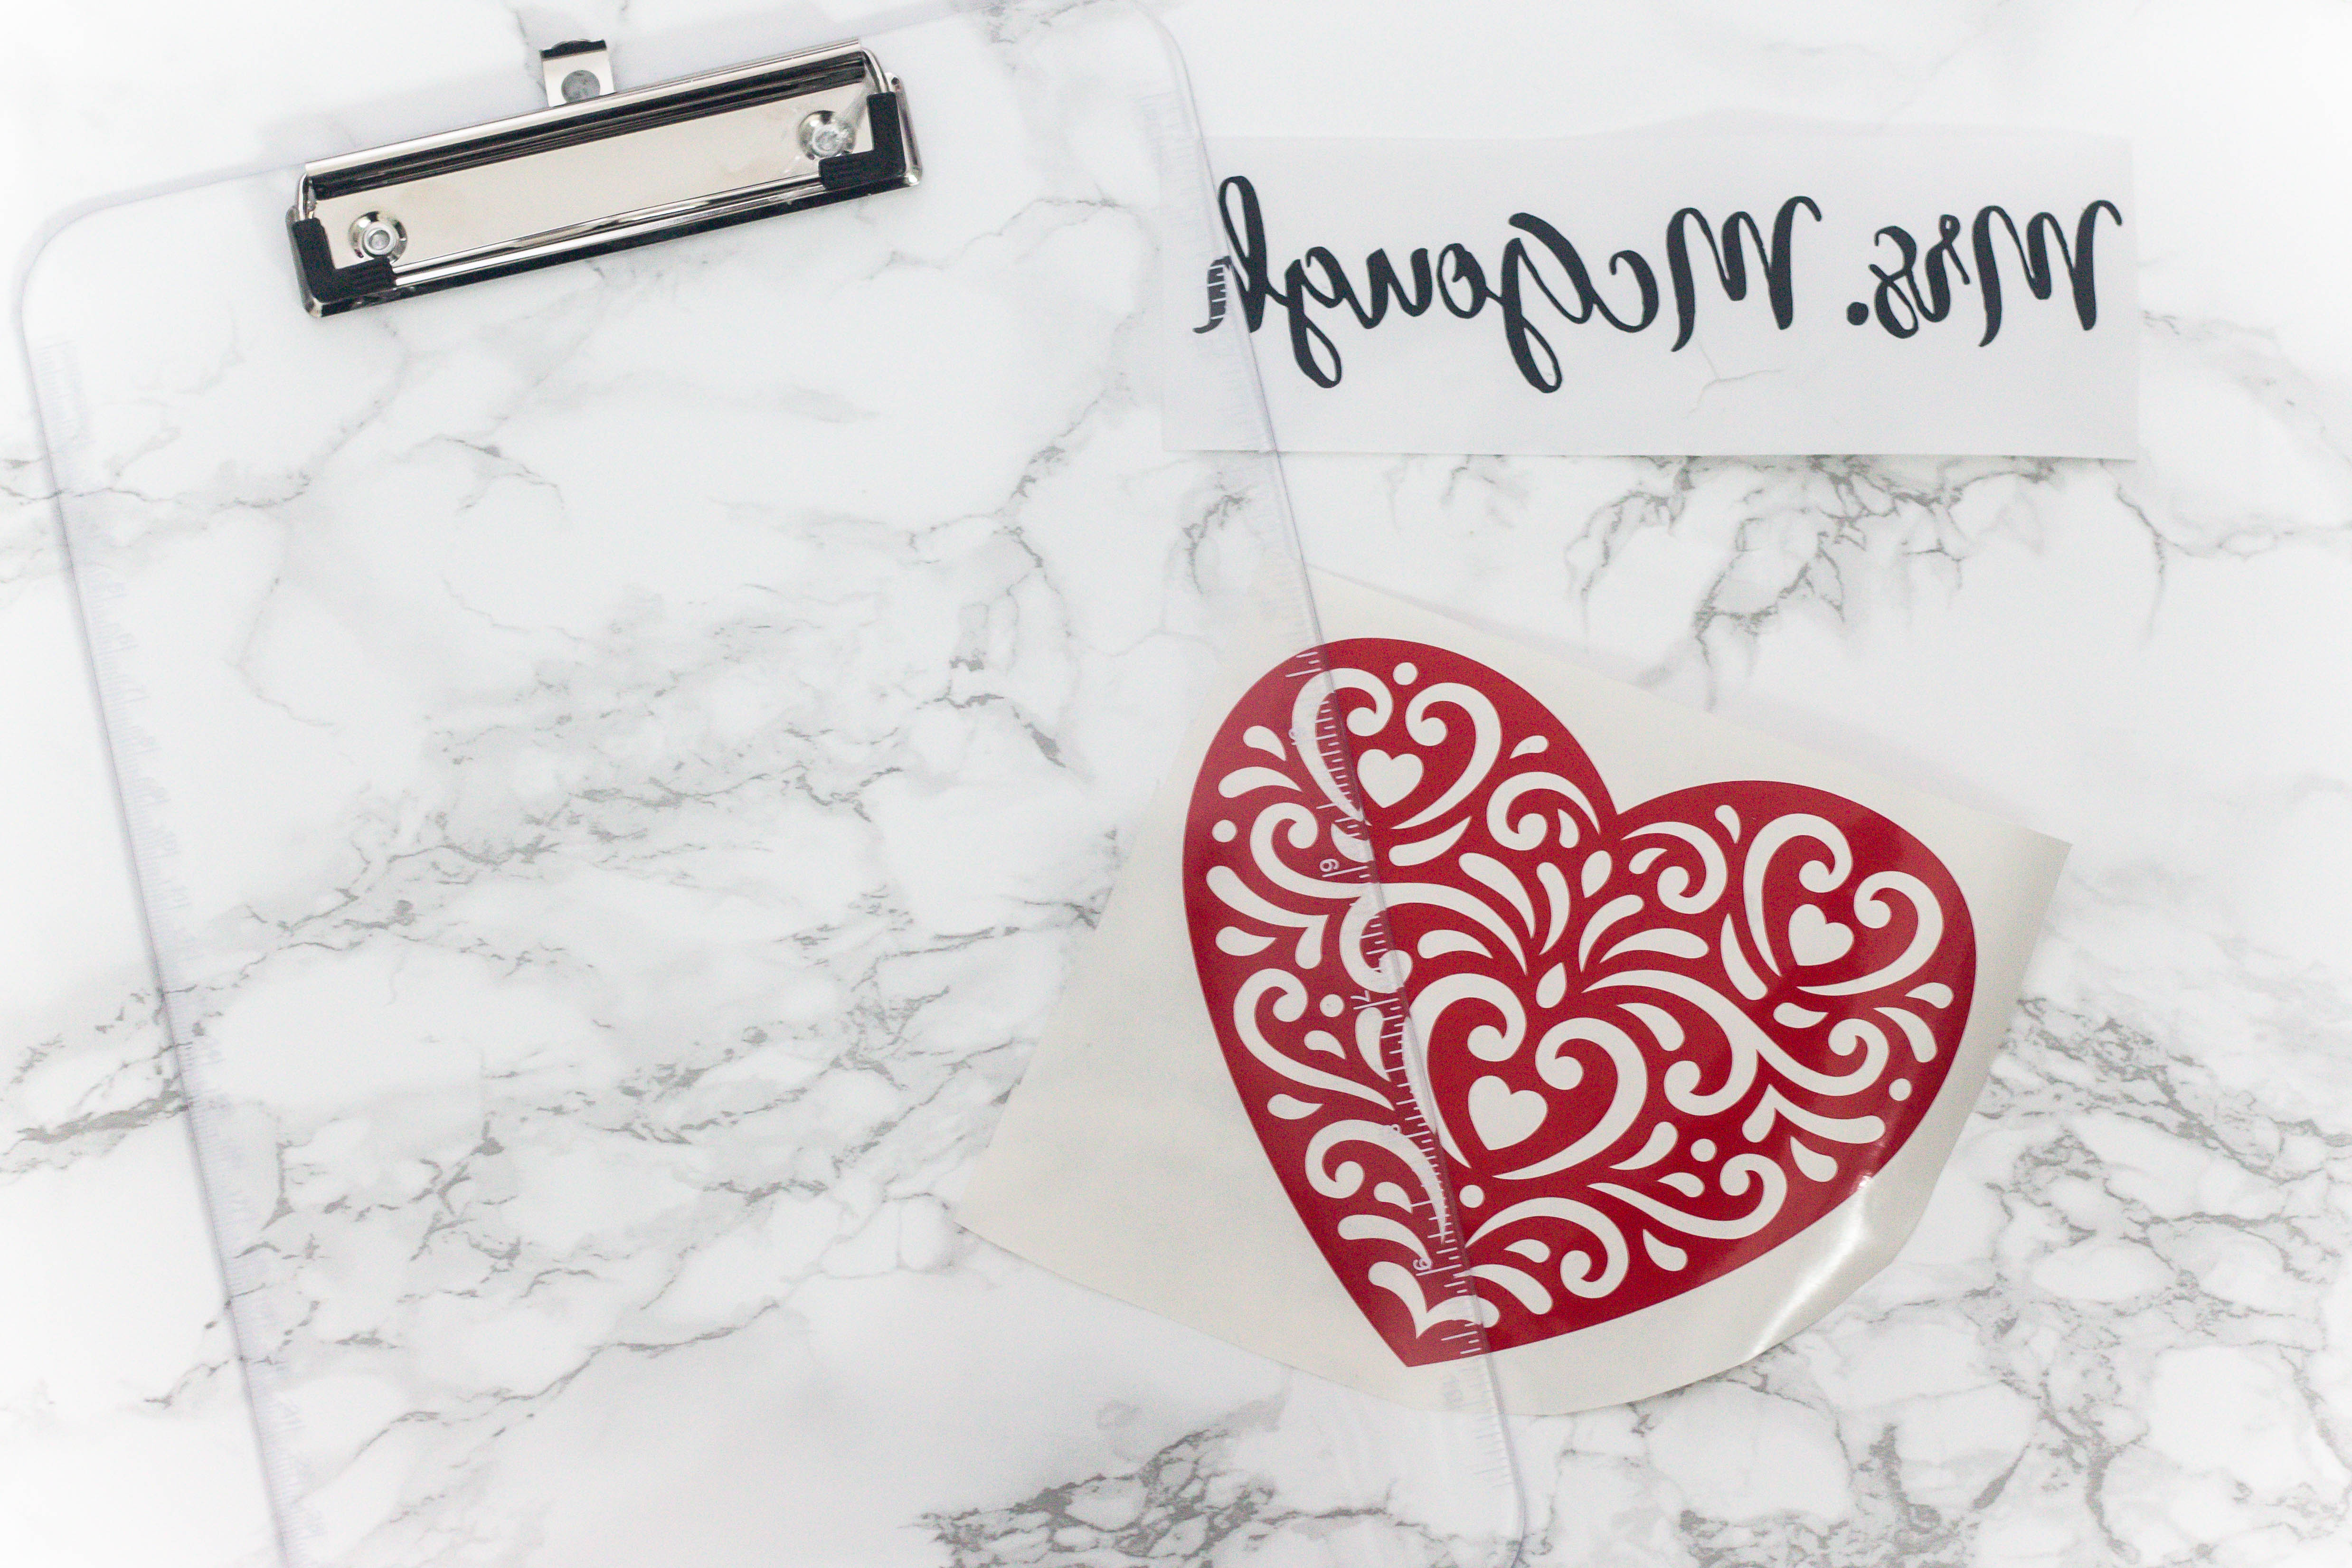 marble countertop with a clear clipboard and a heart image and a name mirrored